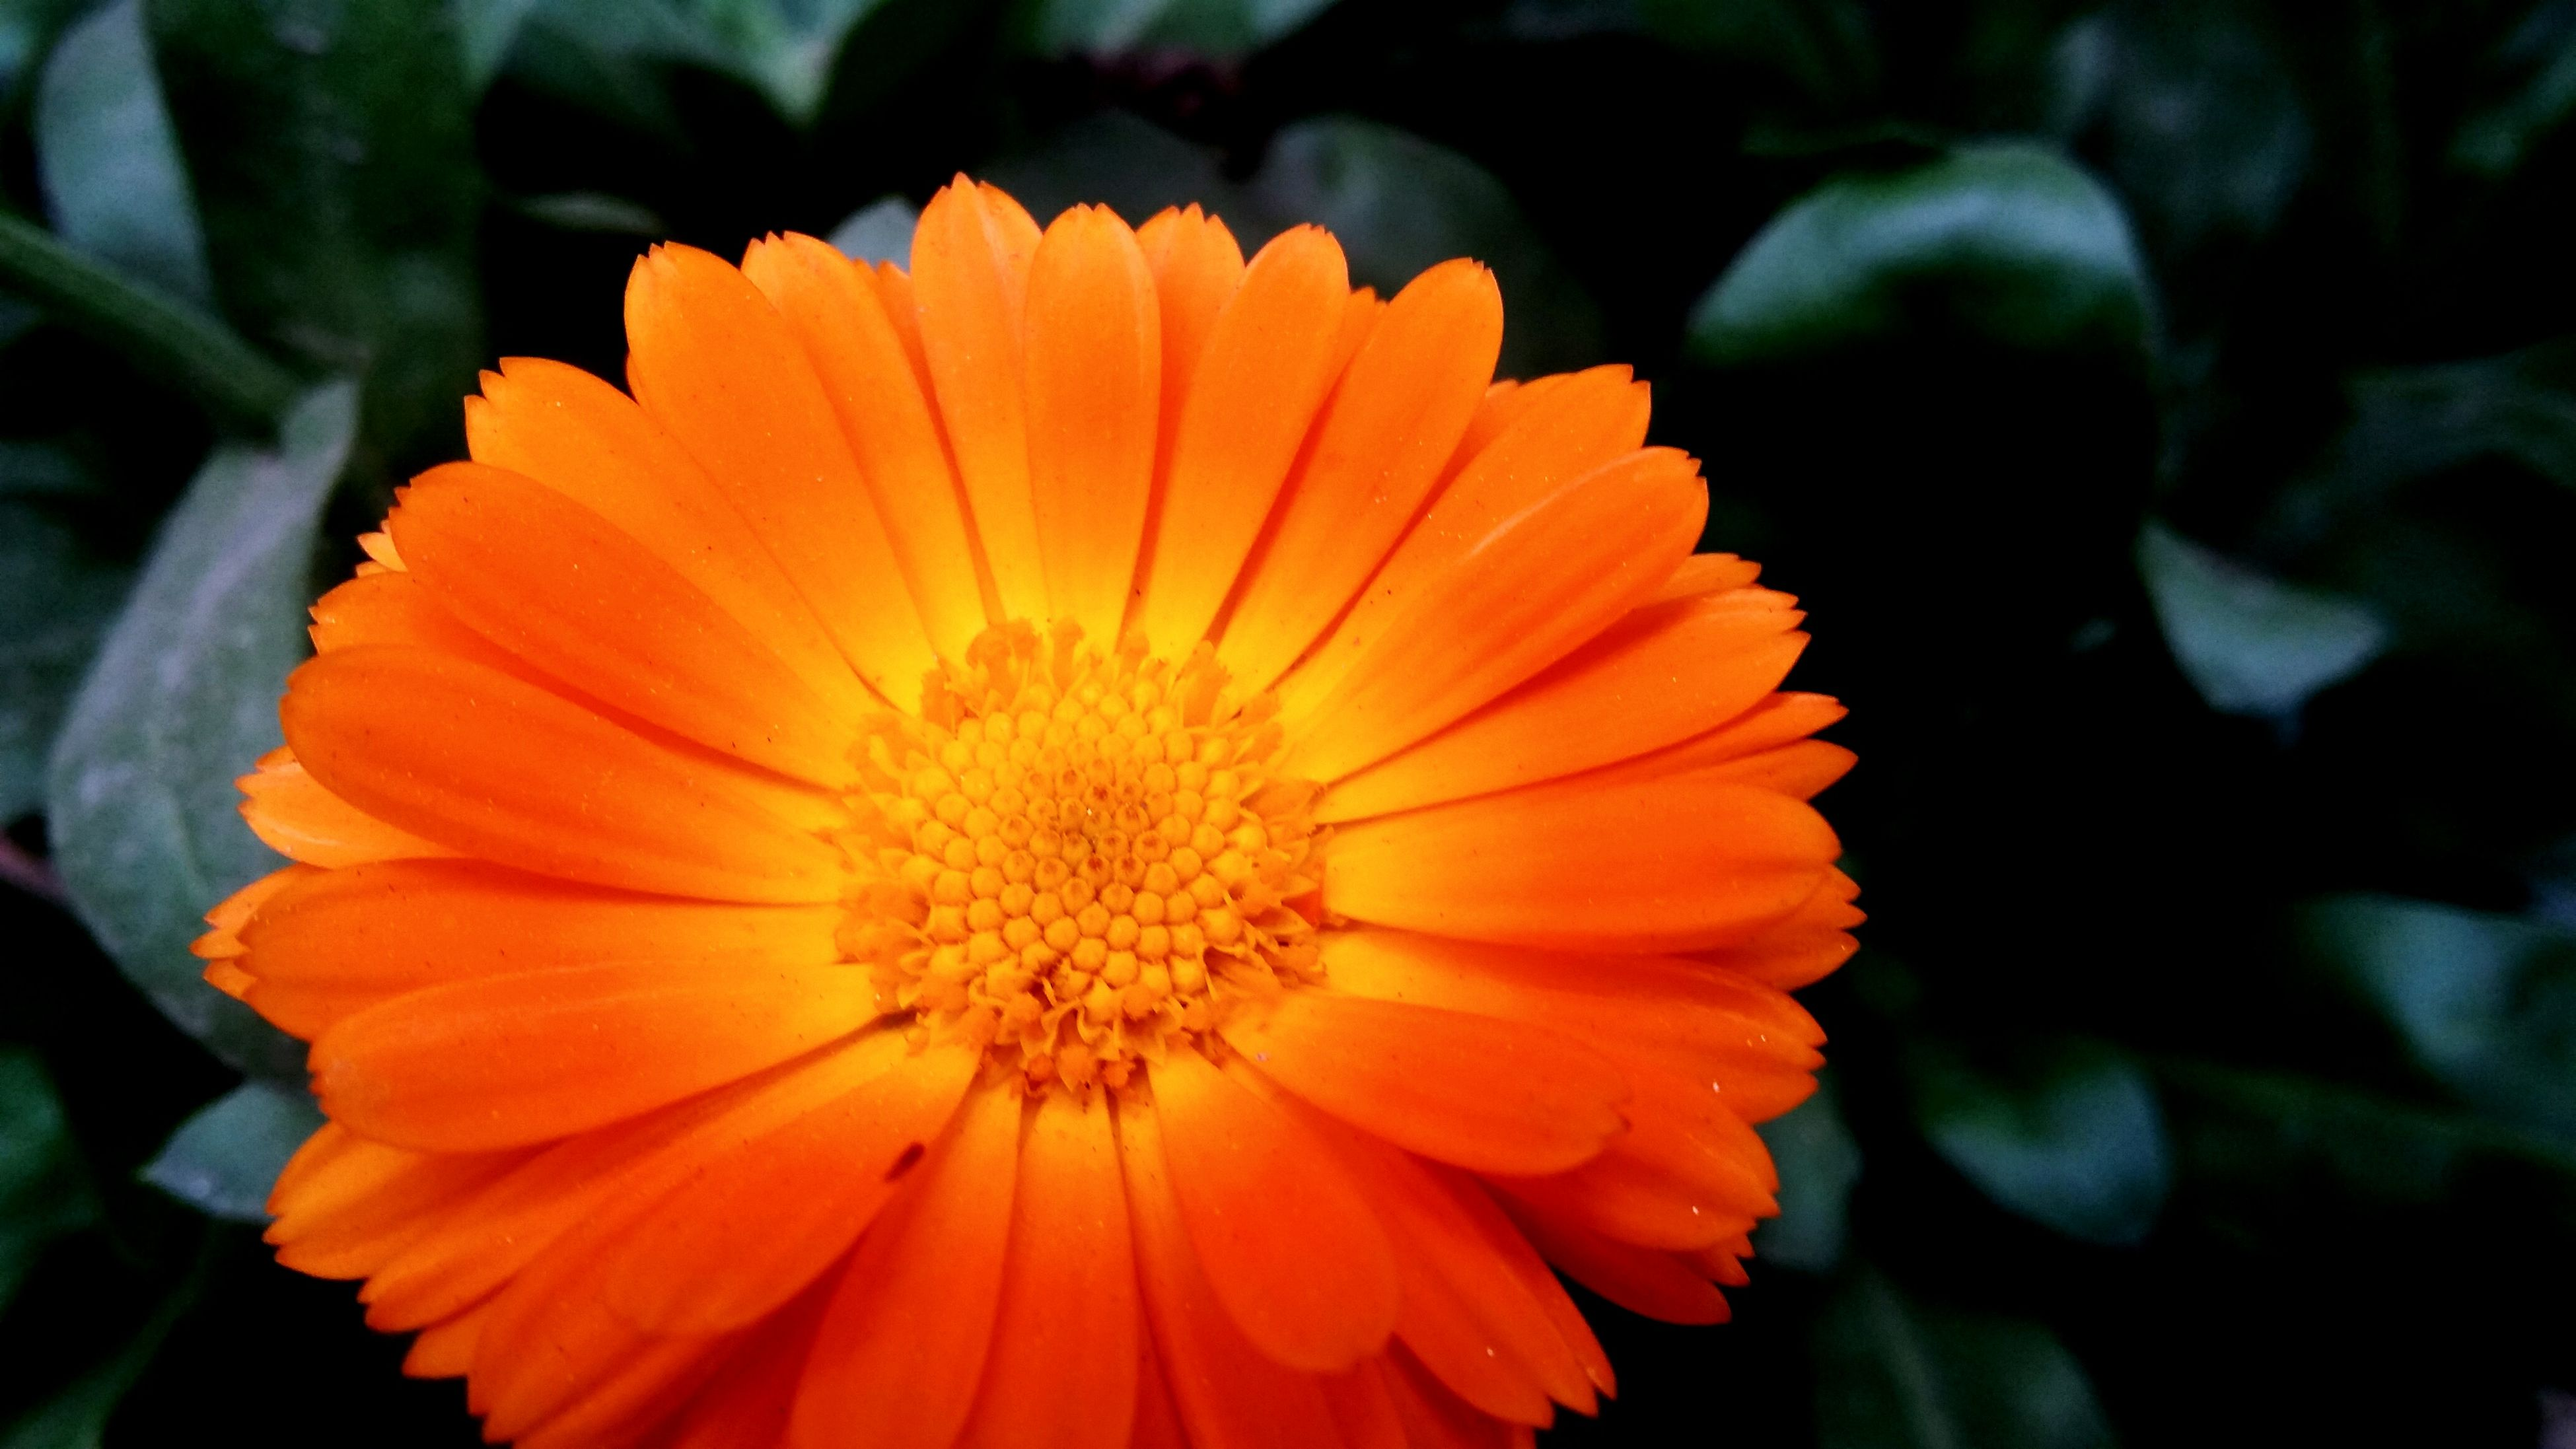 flower, petal, flower head, fragility, freshness, close-up, growth, beauty in nature, blooming, focus on foreground, pollen, orange color, single flower, nature, plant, yellow, in bloom, park - man made space, outdoors, stamen